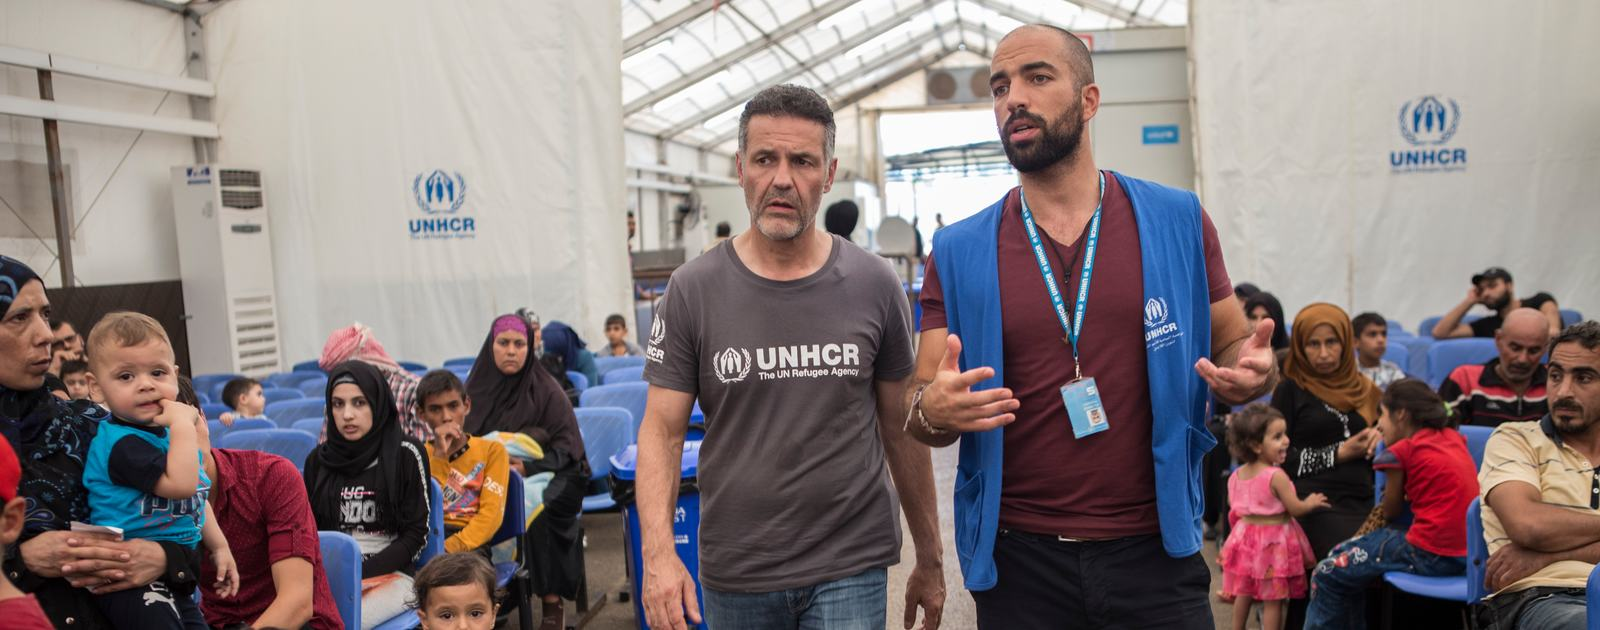 Author and UNHCR Goodwill Ambassador Khaled Hosseini is shown around the UNHCR Reception Centre in Tripoli, North Lebanon